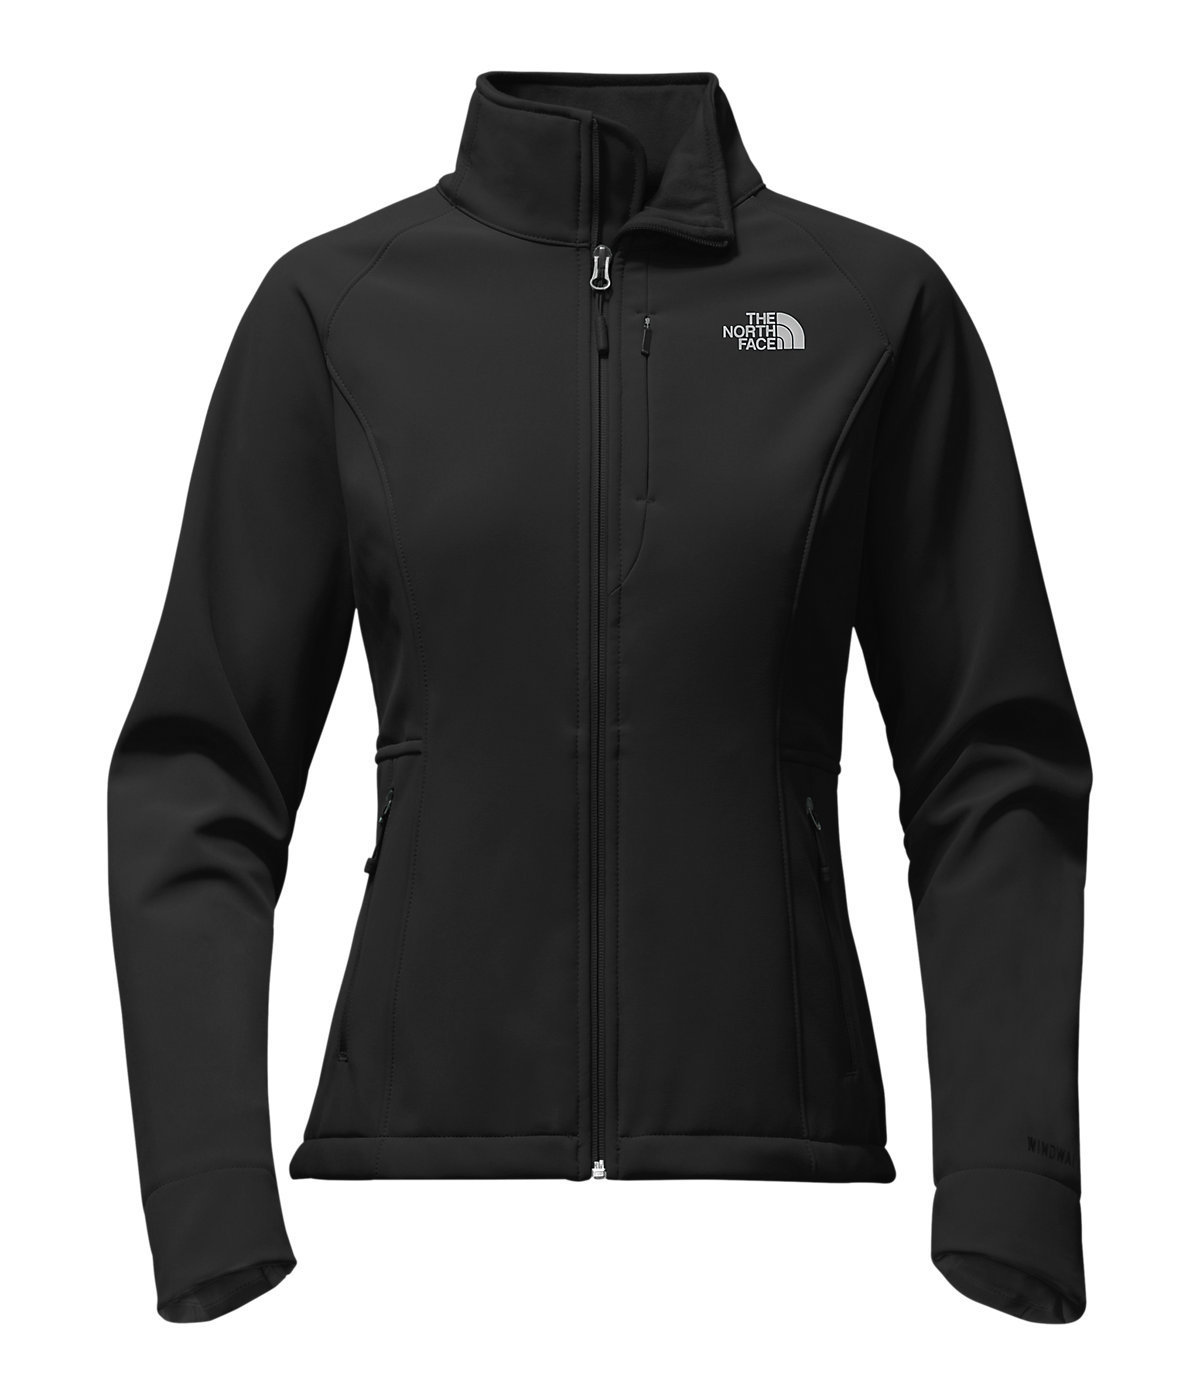 The North Face Womens Apex Bionic 2 Softshell Jacket - TNF Black. Show More f8c0a8466